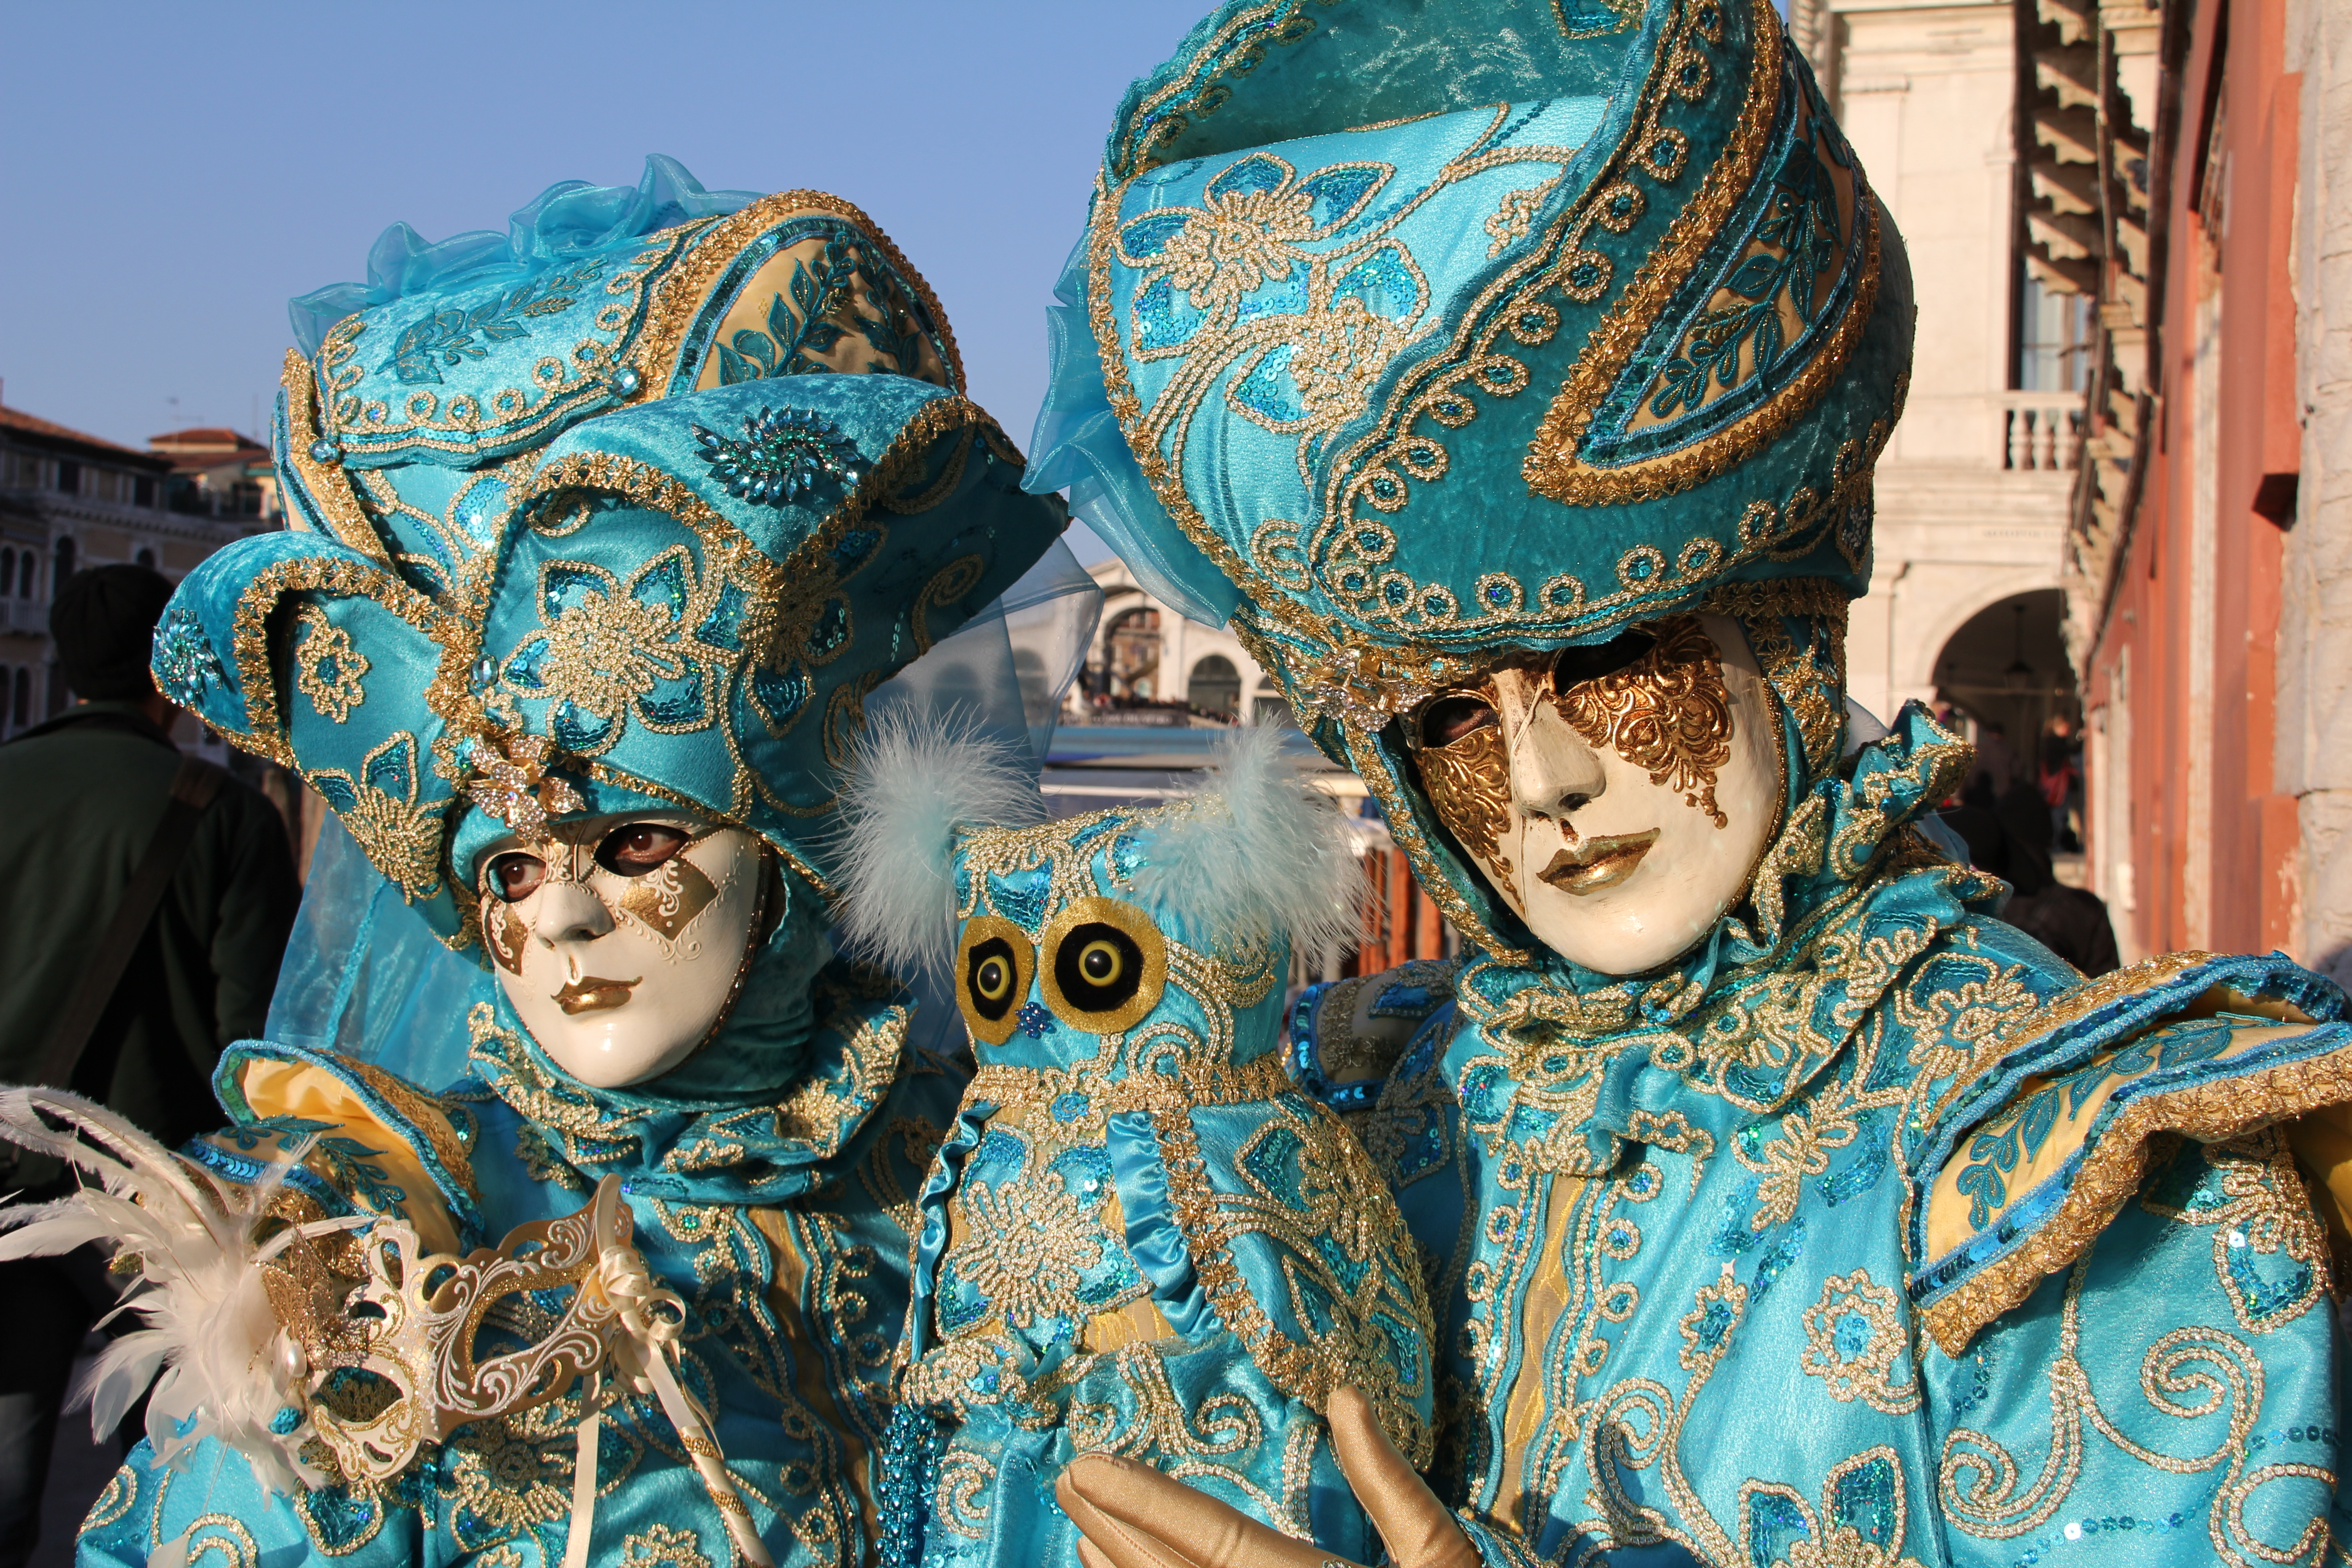 venice carnival The carnival of venice 2018: the most popular masked carnival of italy, venice carnival is a must-go annual event, boasting a long history learn more abou.